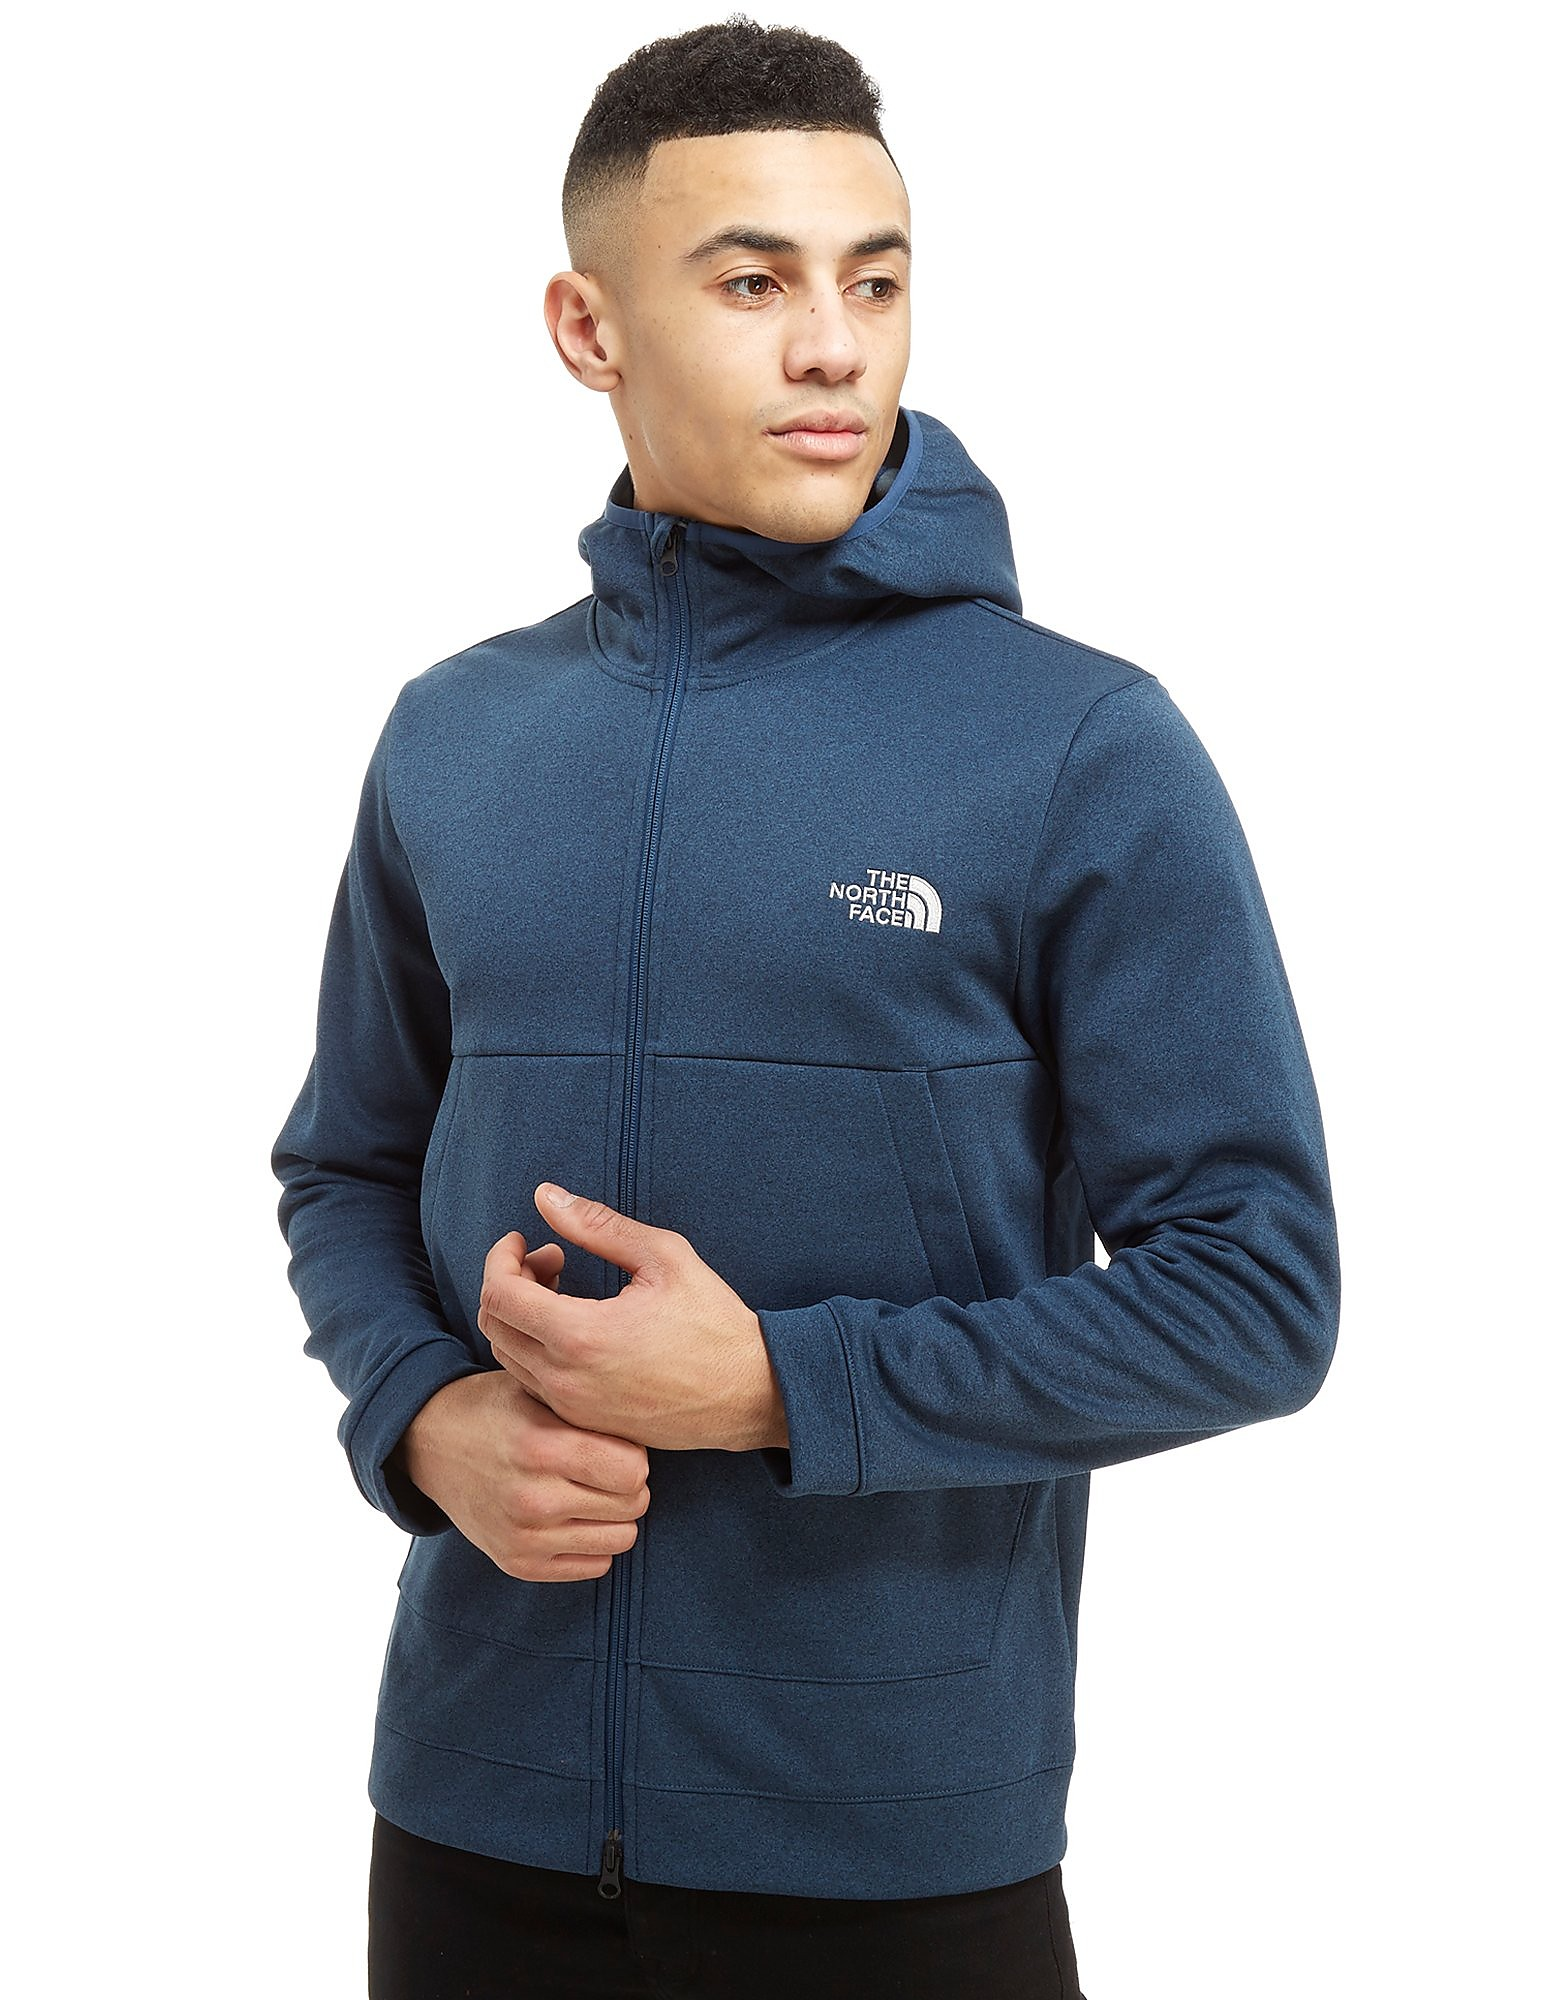 The North Face Zip Through Mountain Tech Hoodie